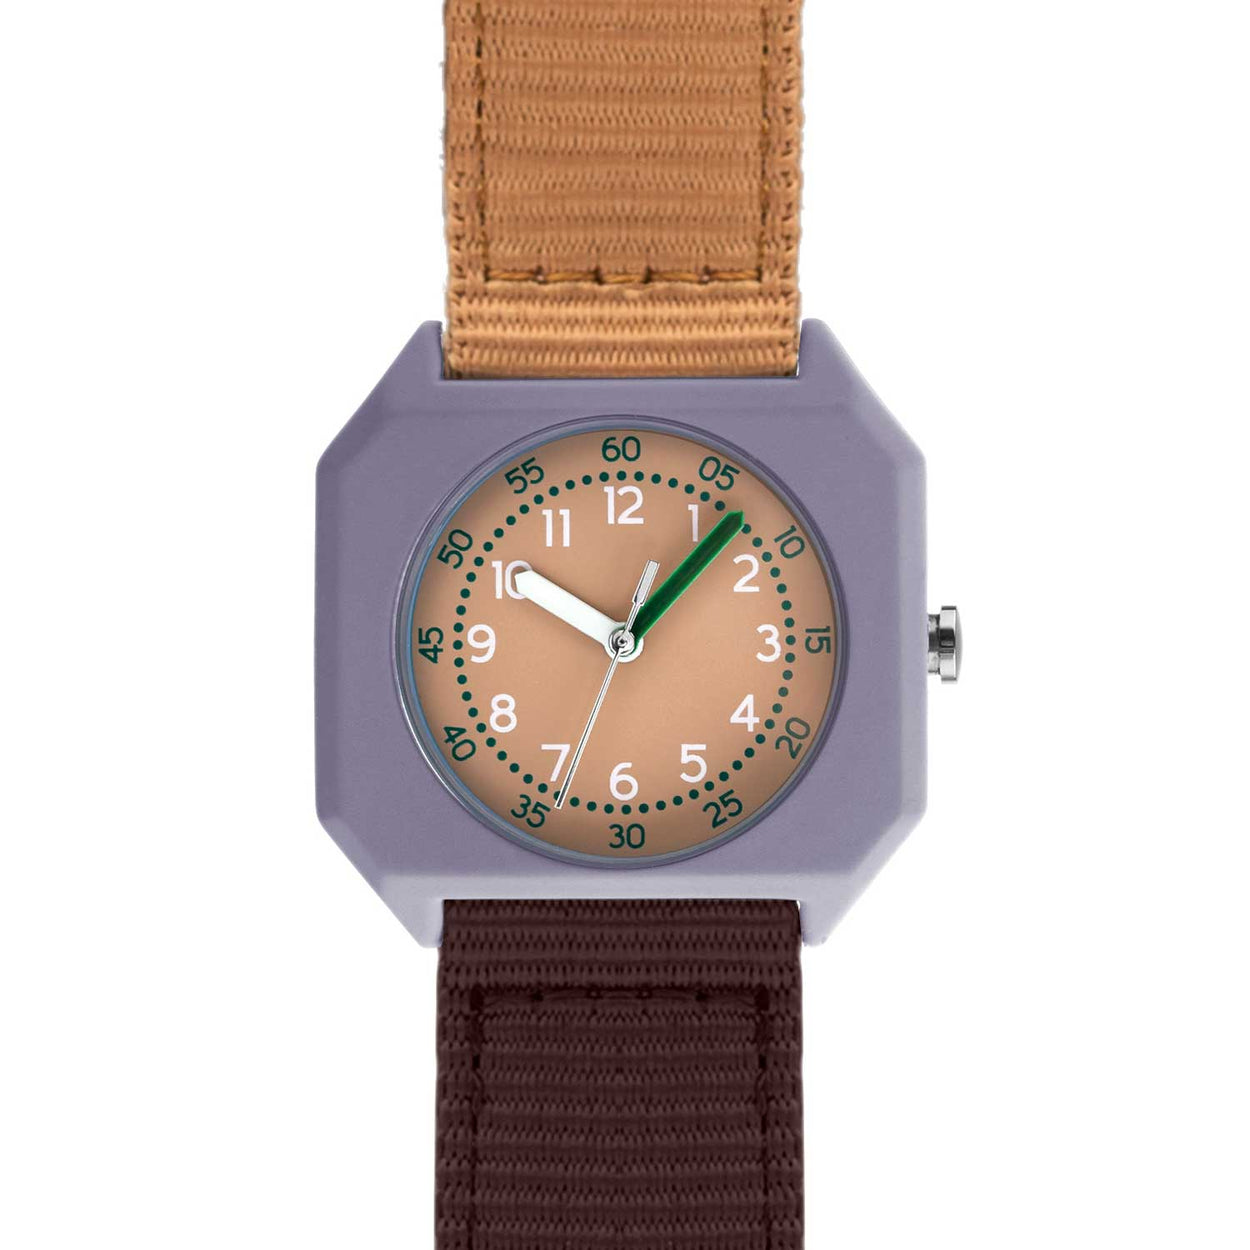 Stylish kids watch, Plum Cake by Mini Kyomo